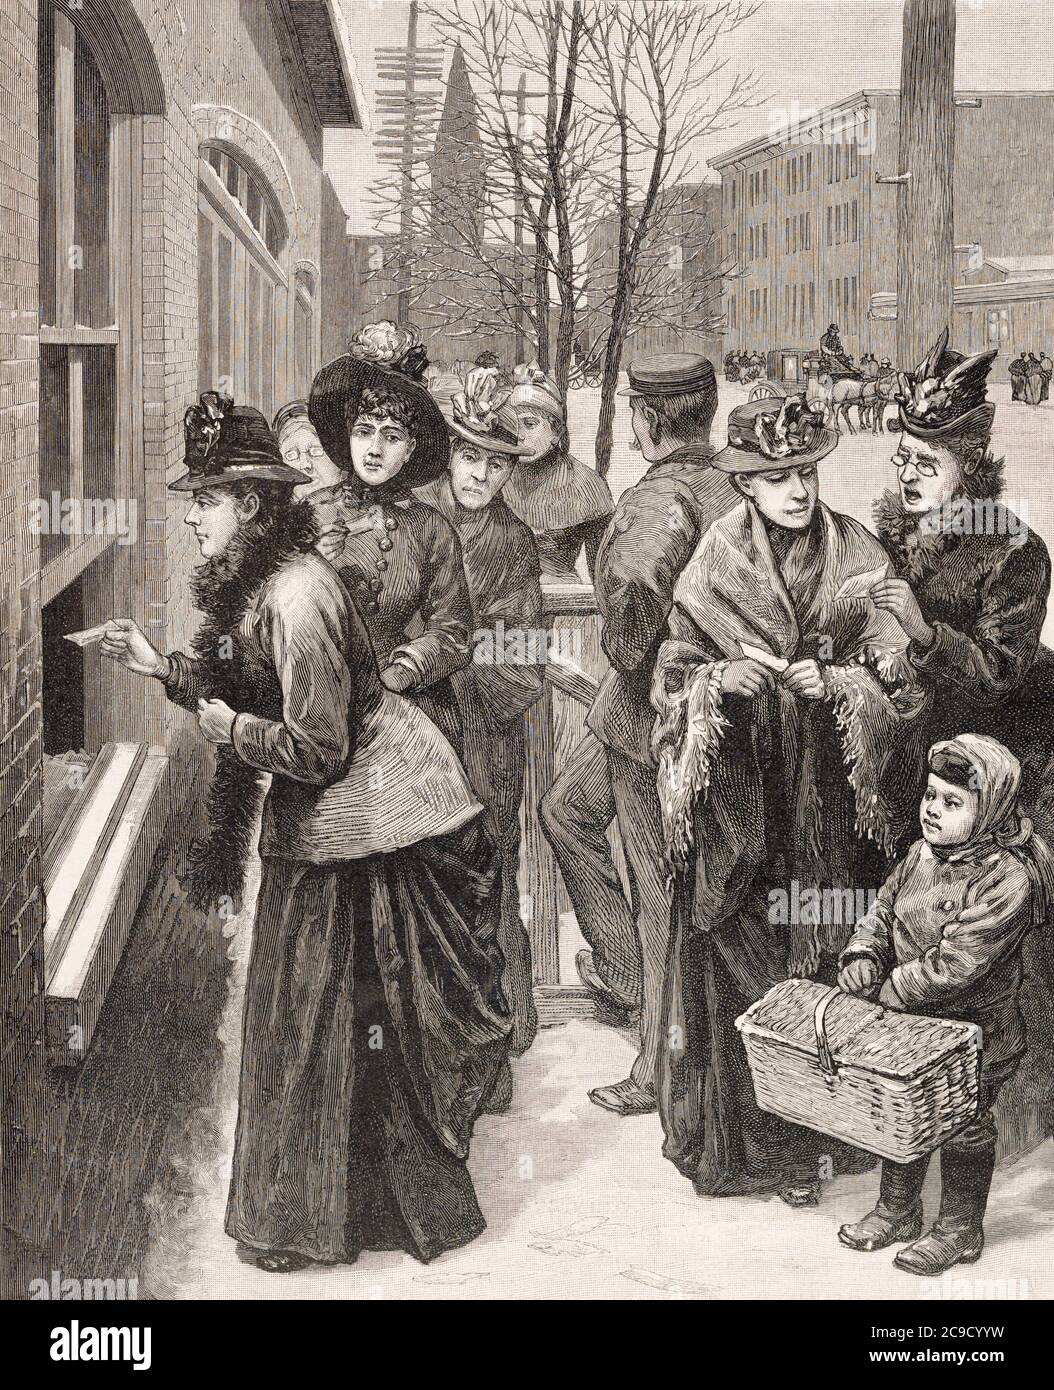 Women casting their vote at the polls in Cheyenne, Wyoming Territory, USA.  After an illustration by an unknown artist in the November 24, 1888 edition of Frank Leslie's Illustrated Newpaper.  In 1869 the Wyoming Suffrage Act was passed and Wyoming became the first USA territory, or state to guarantee their women citizens full suffrage. Stock Photo